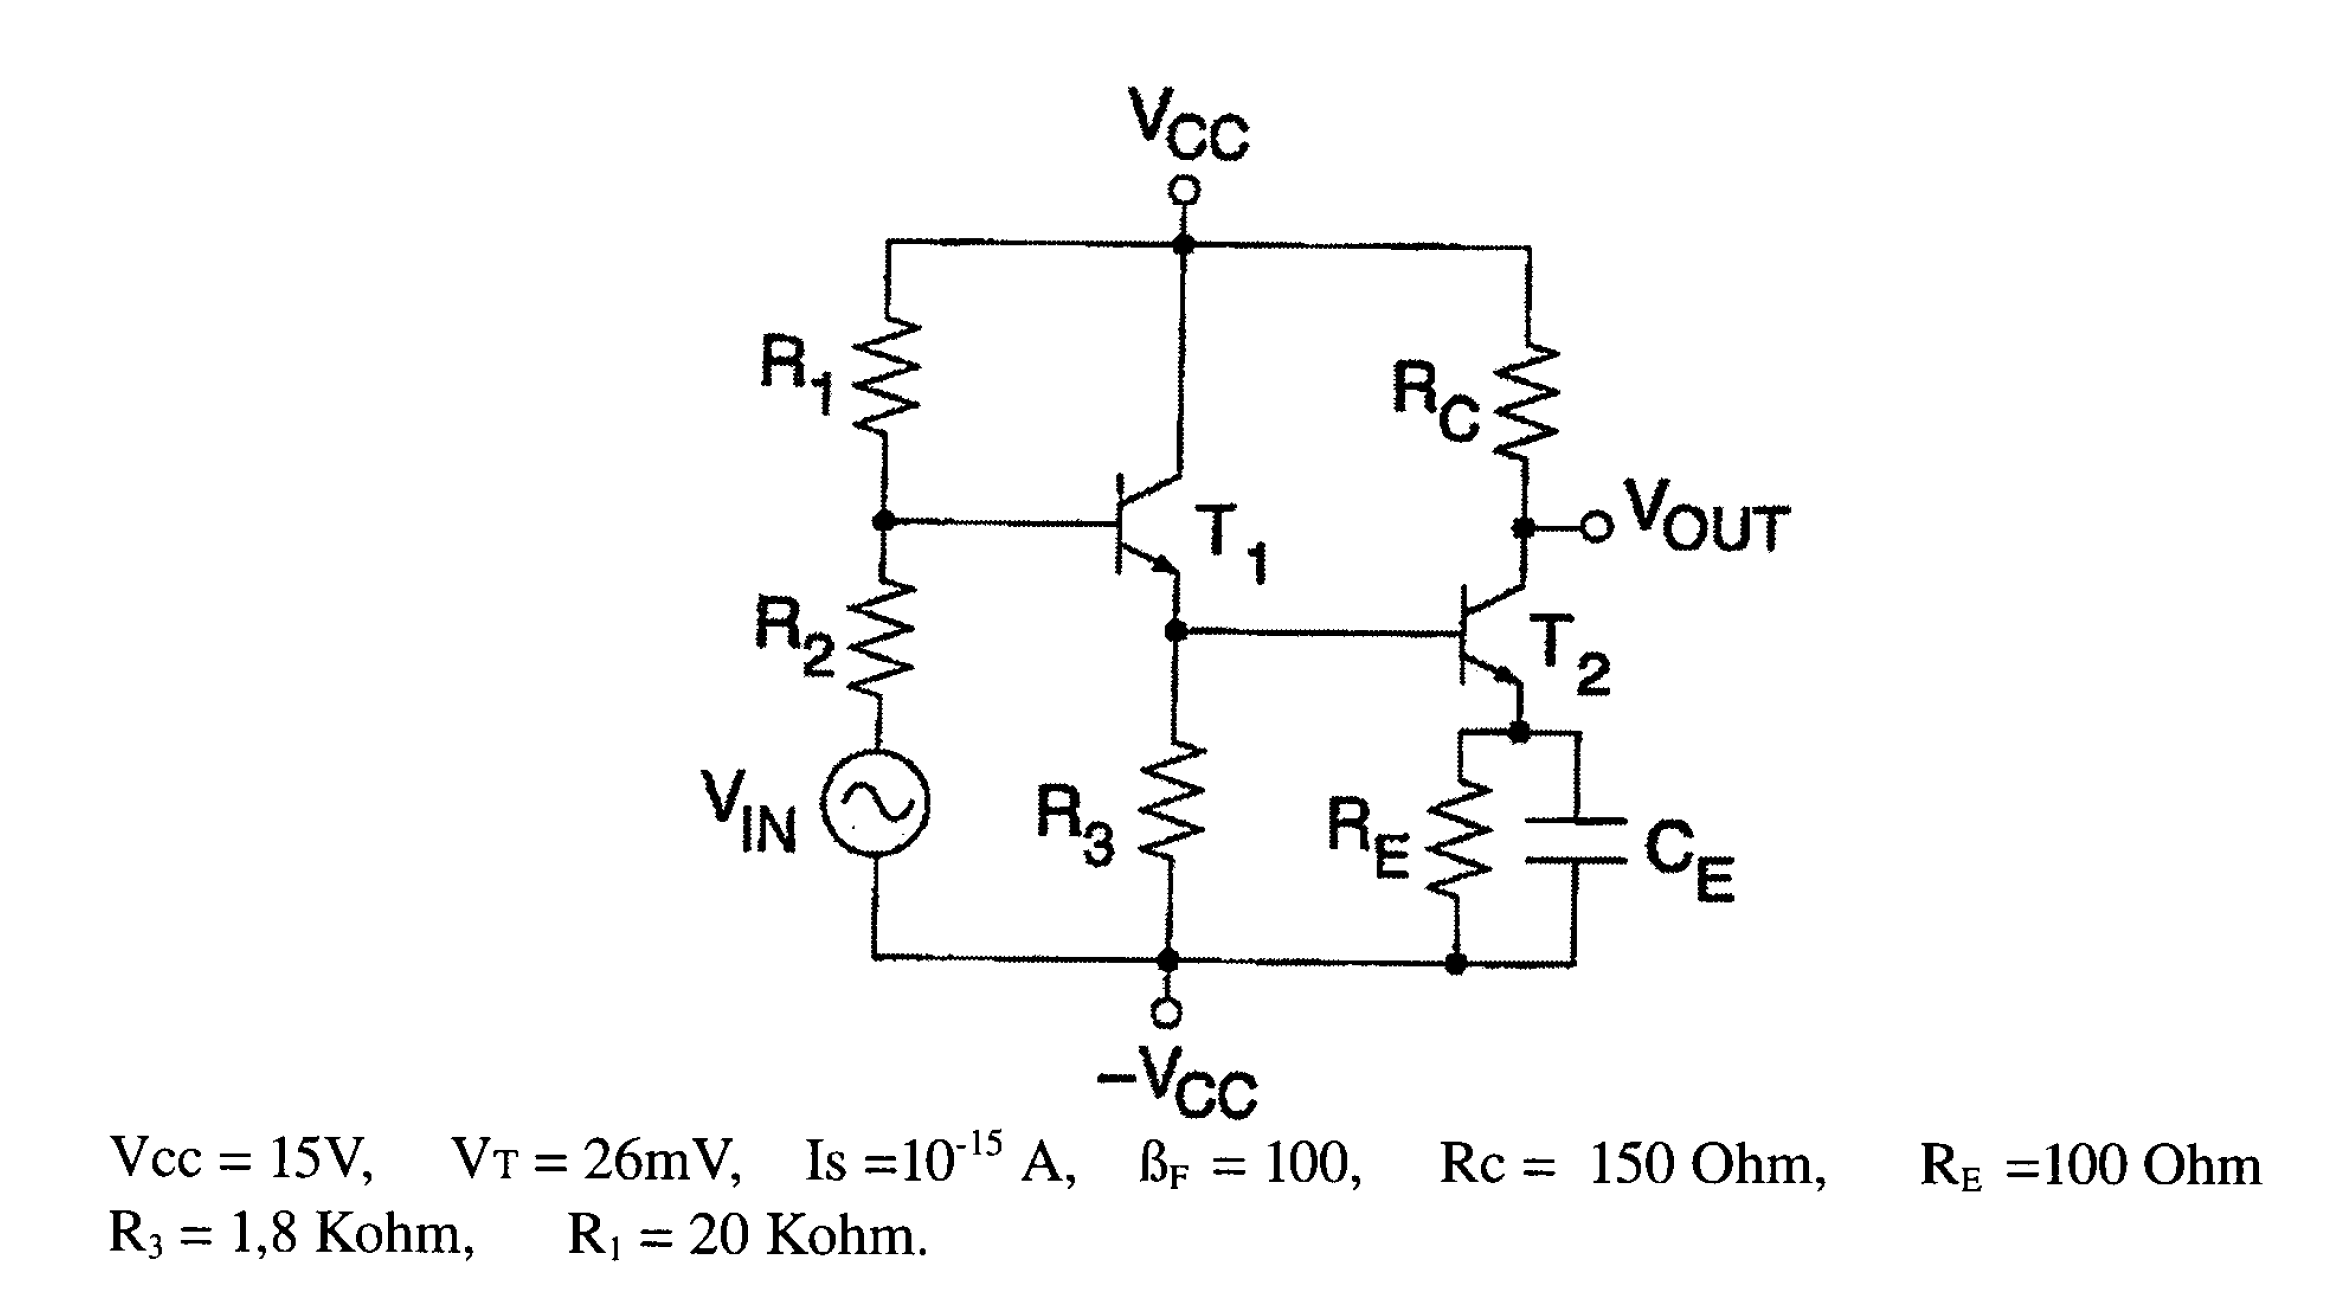 image for 2 purpose coupling diodes and bjts in the circuit below